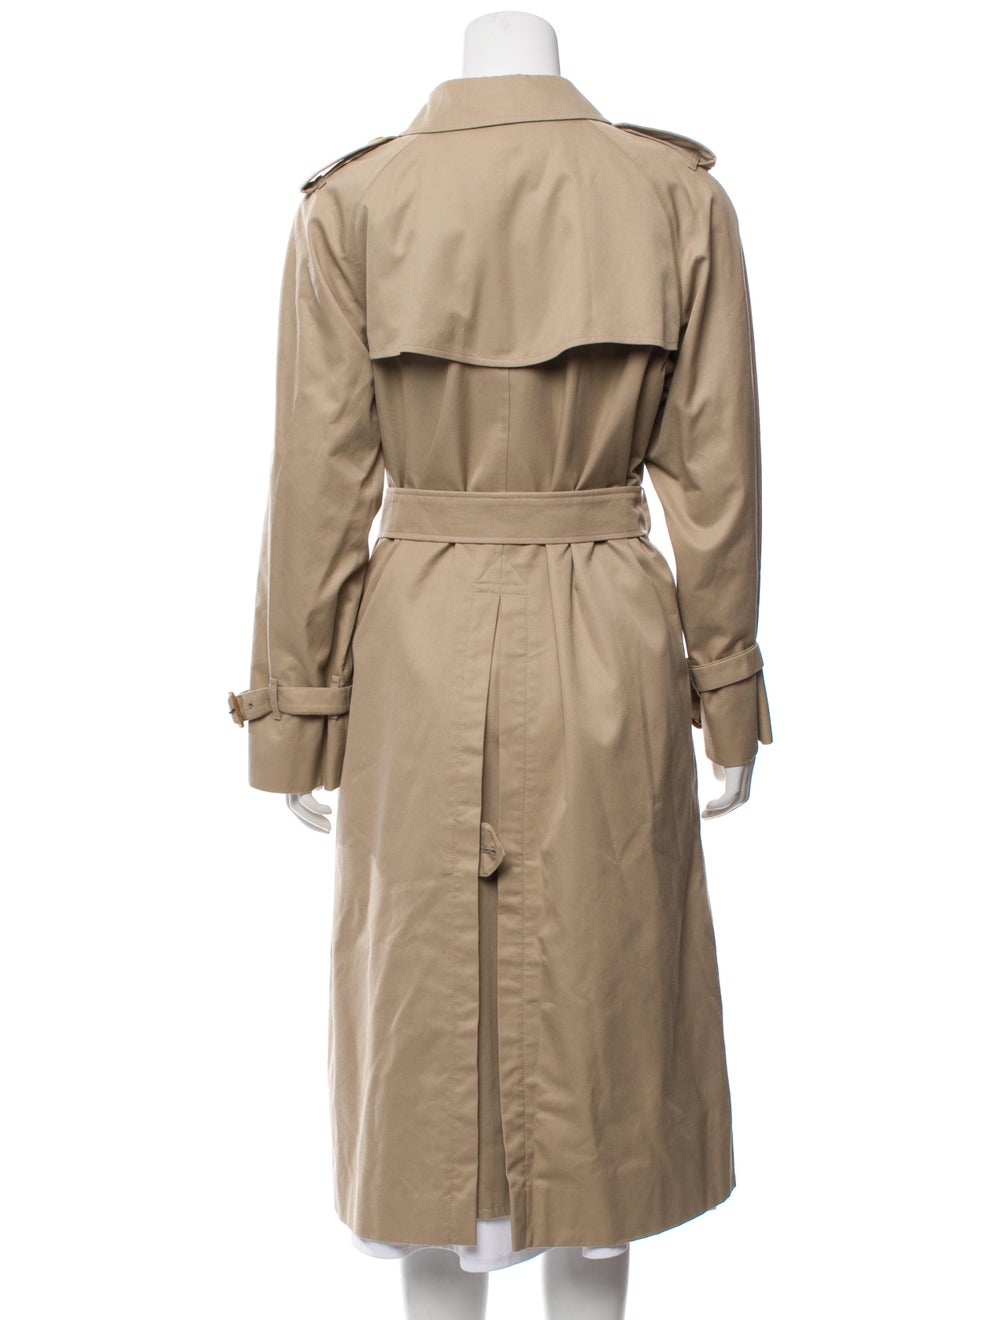 Burberry Vintage Trench Coat Beige - image 3